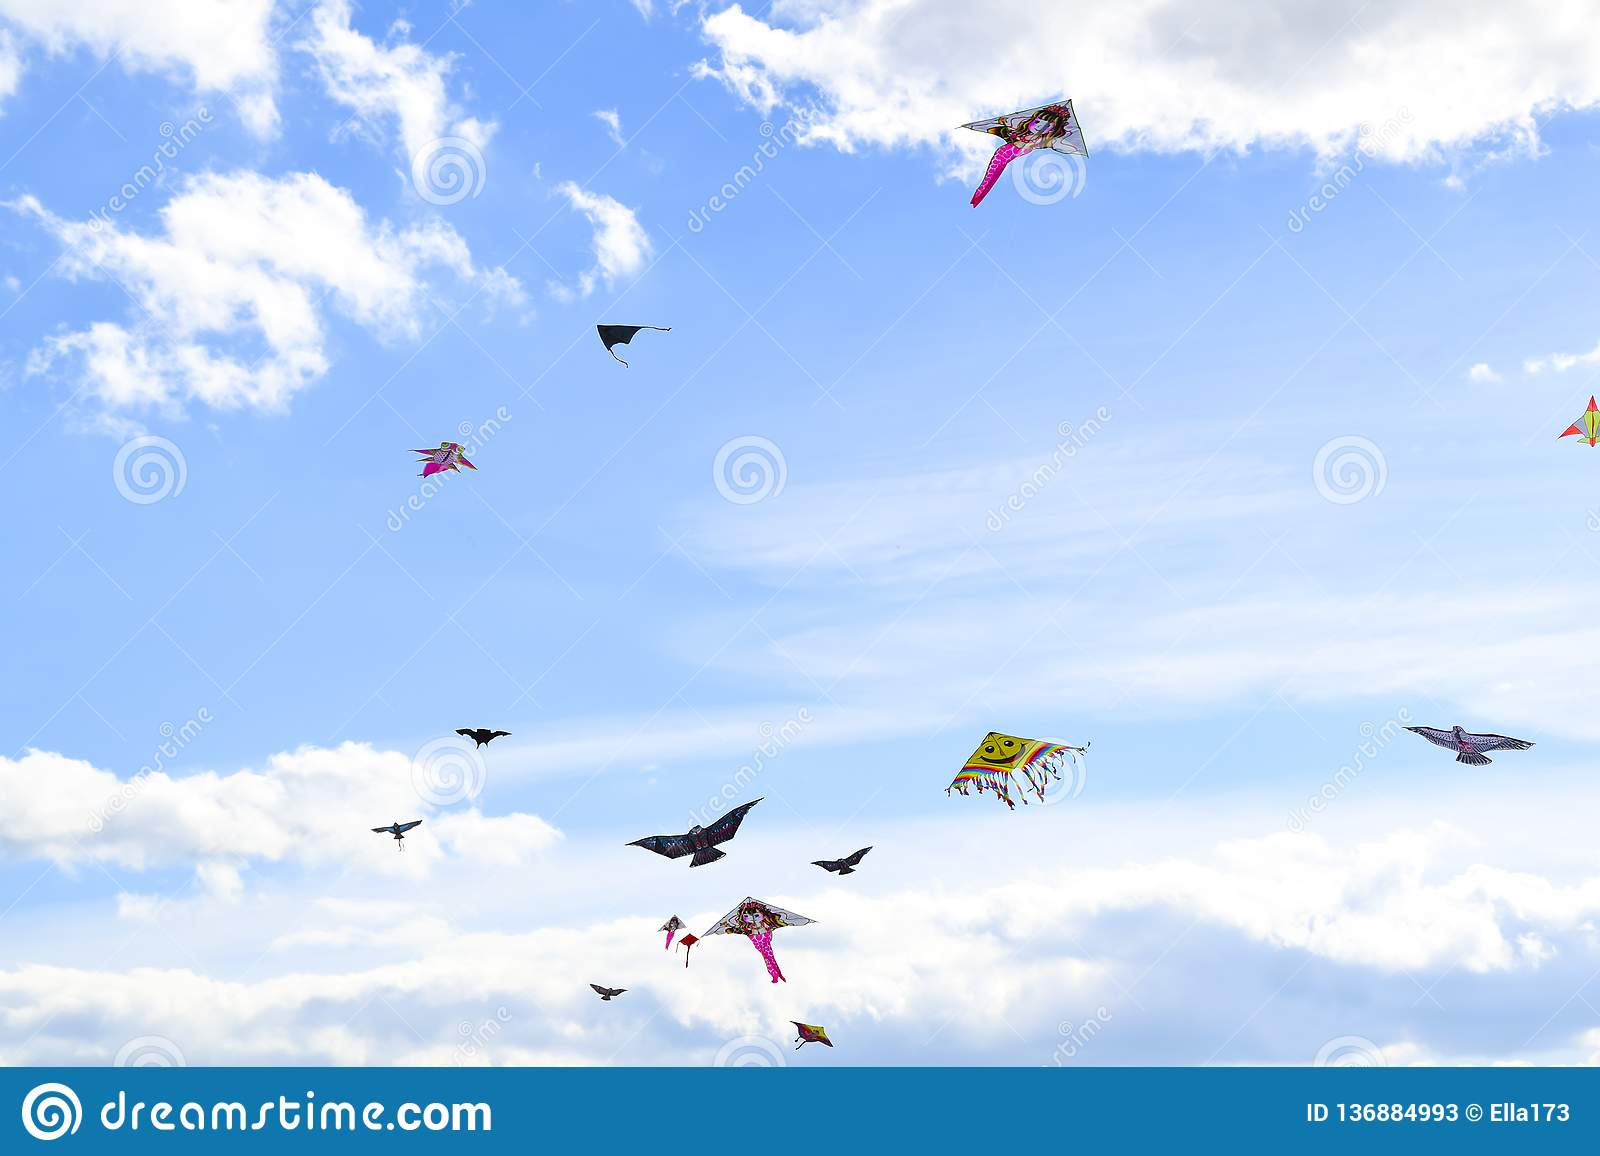 Lot of multi-colored kites in the sky vertical background